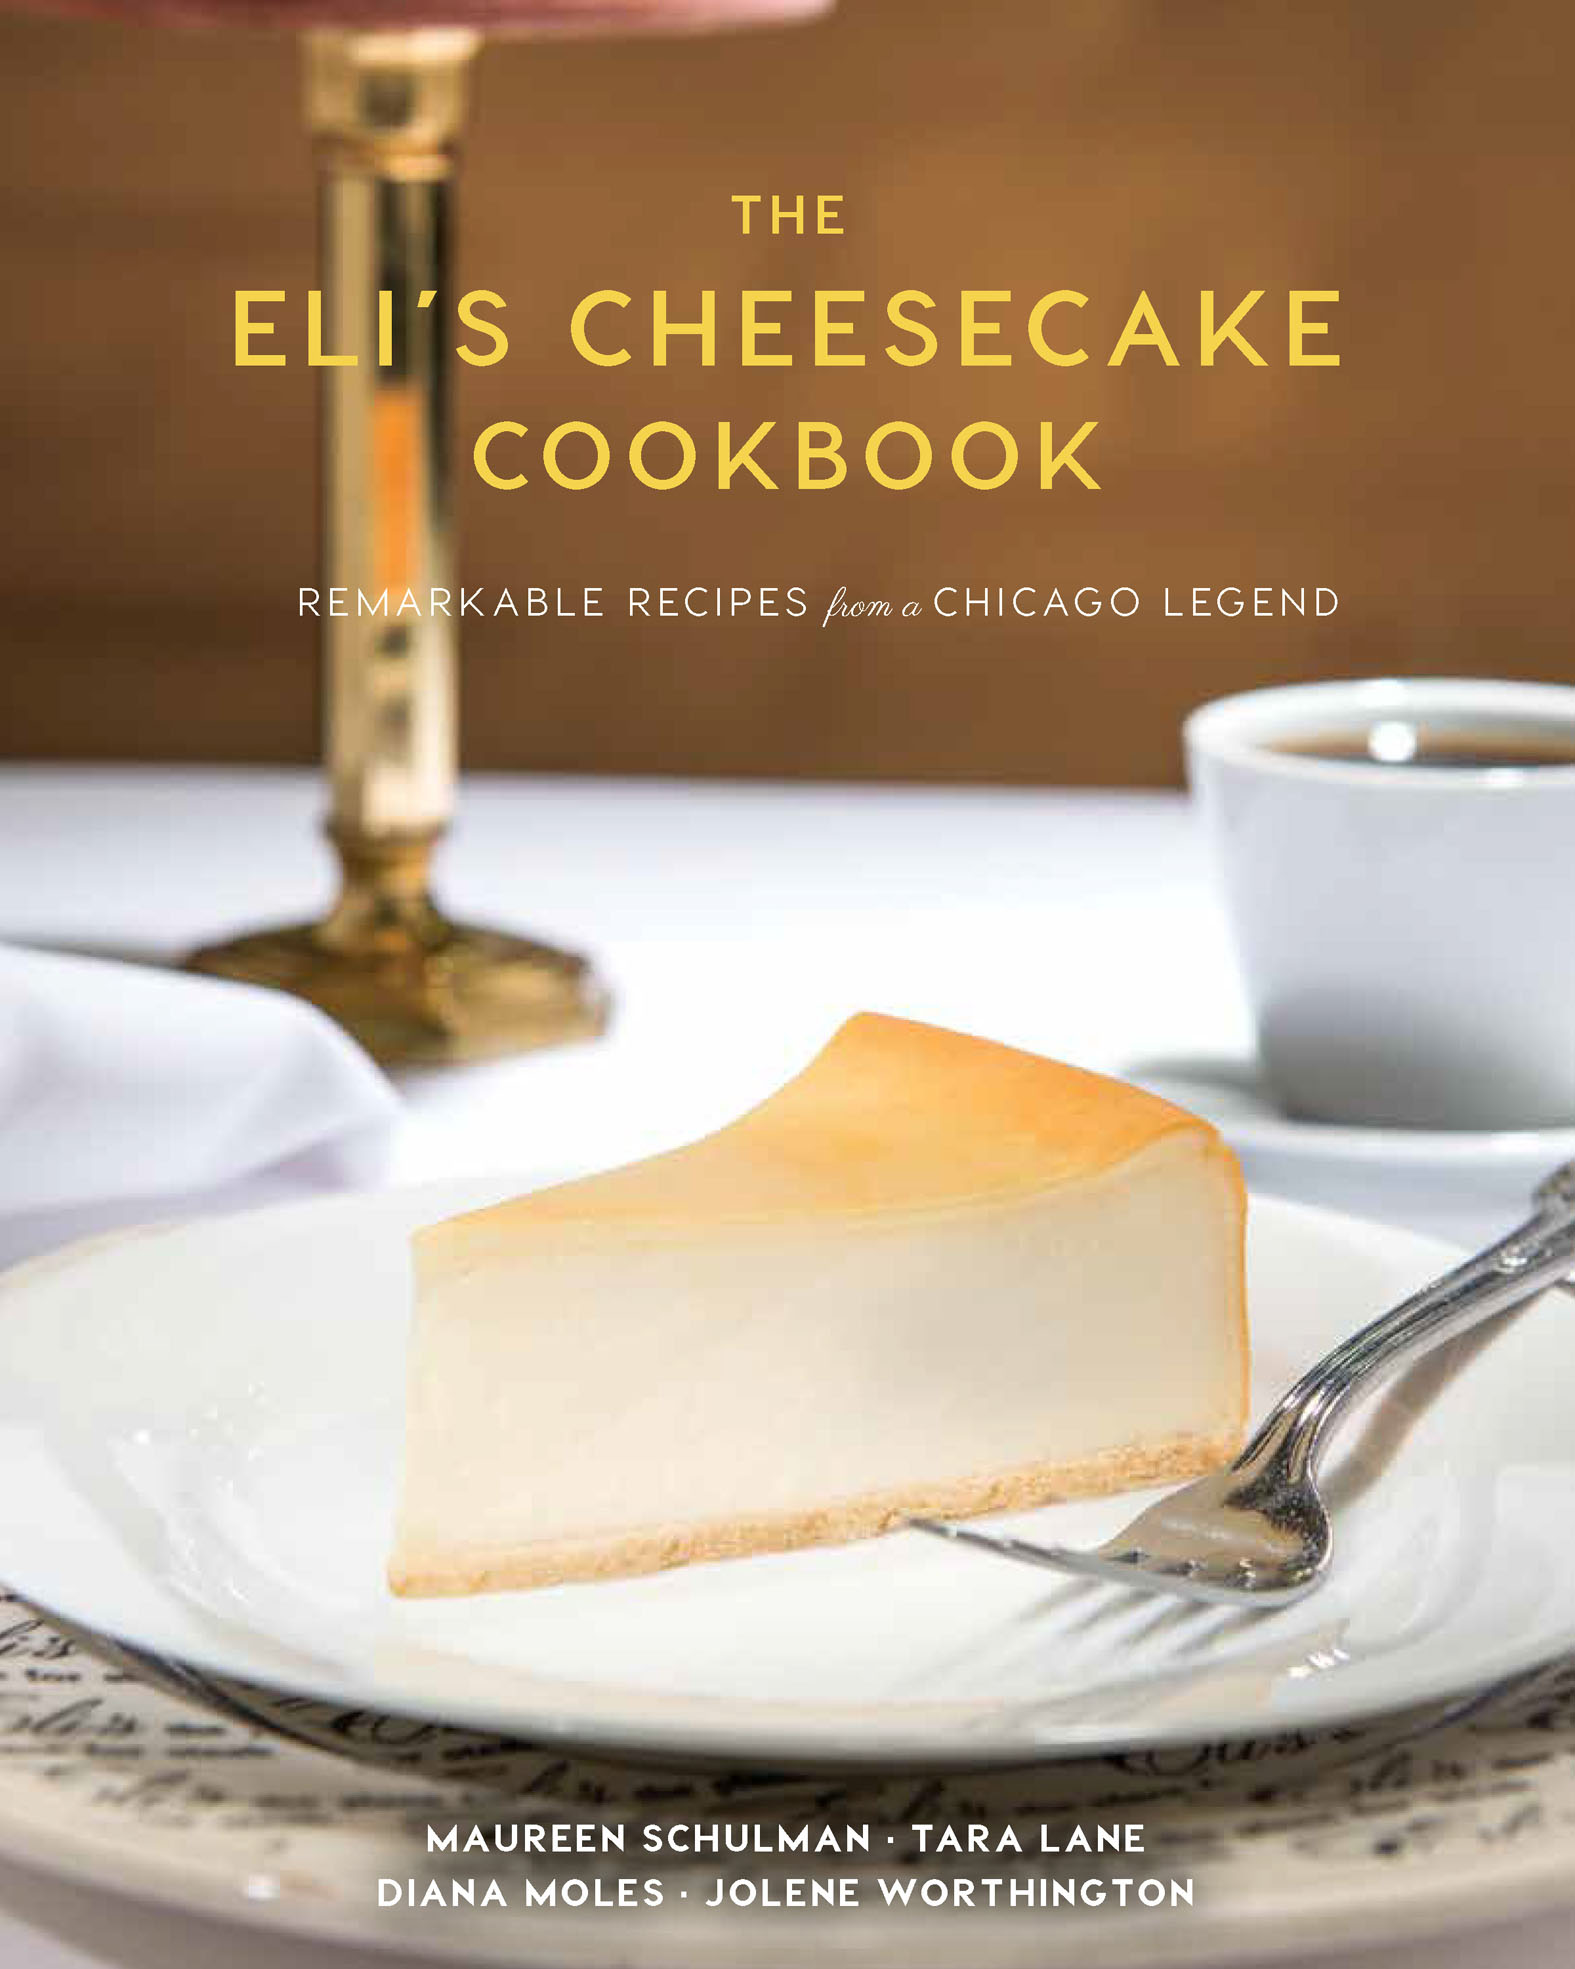 The Eli's Cheesecake Cookbook Remarkable Recipes from a Chicago Legend